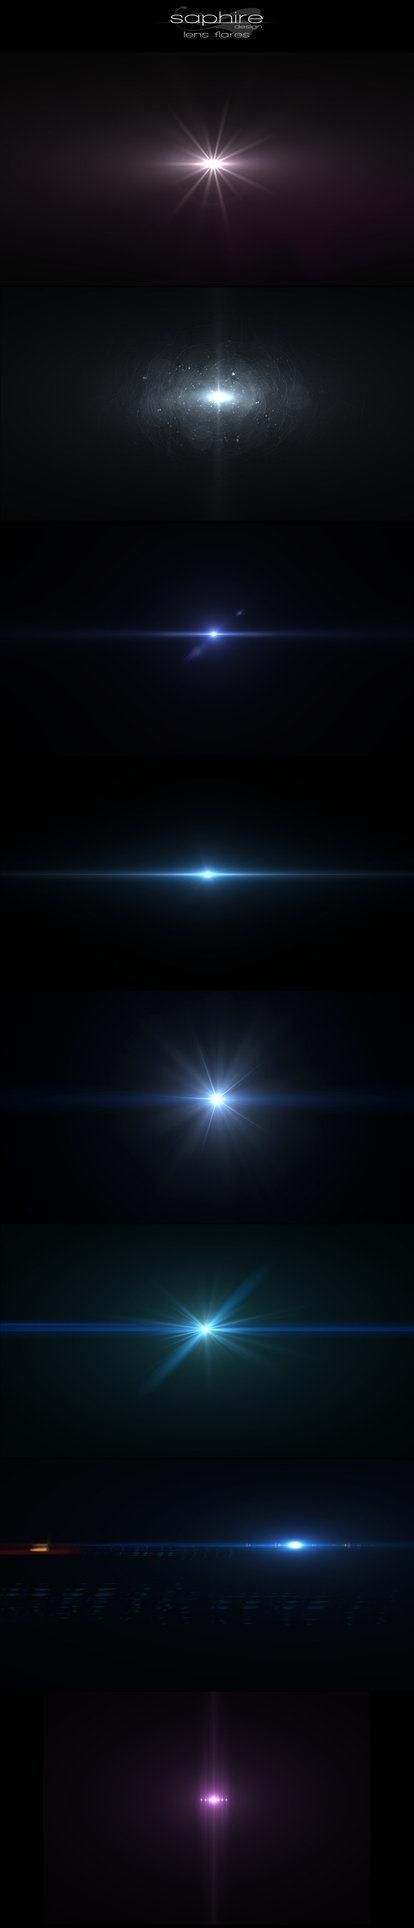 Photoshop Lens Flare Stock Images